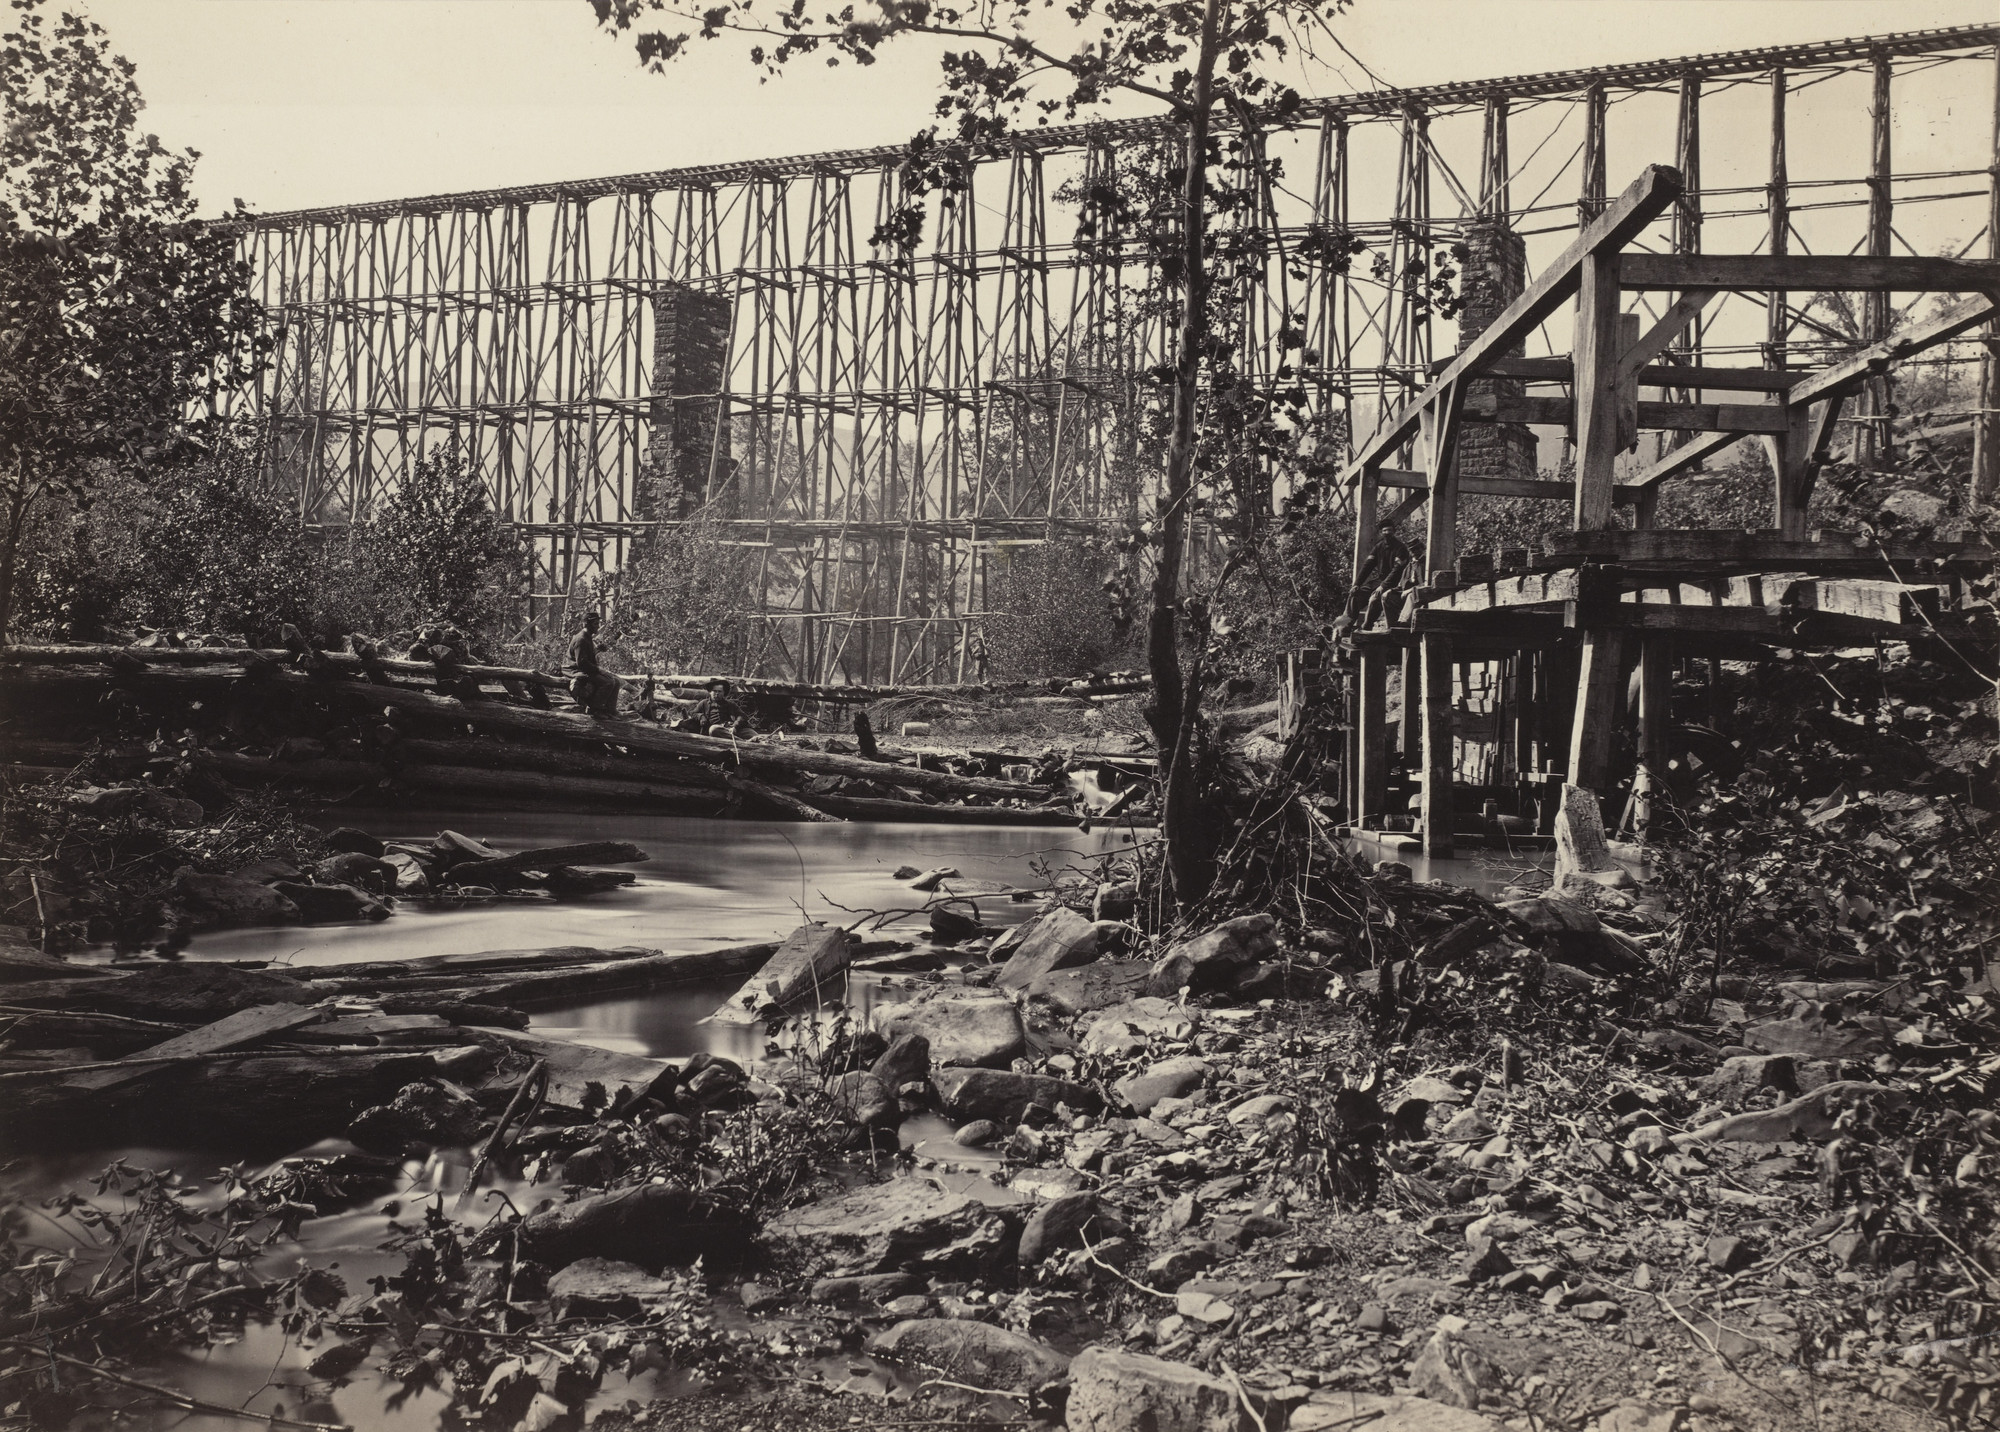 George Barnard. Trestle Bridge, at Whiteside from the album Photographic Views of Sherman's Campaign. 1864-65